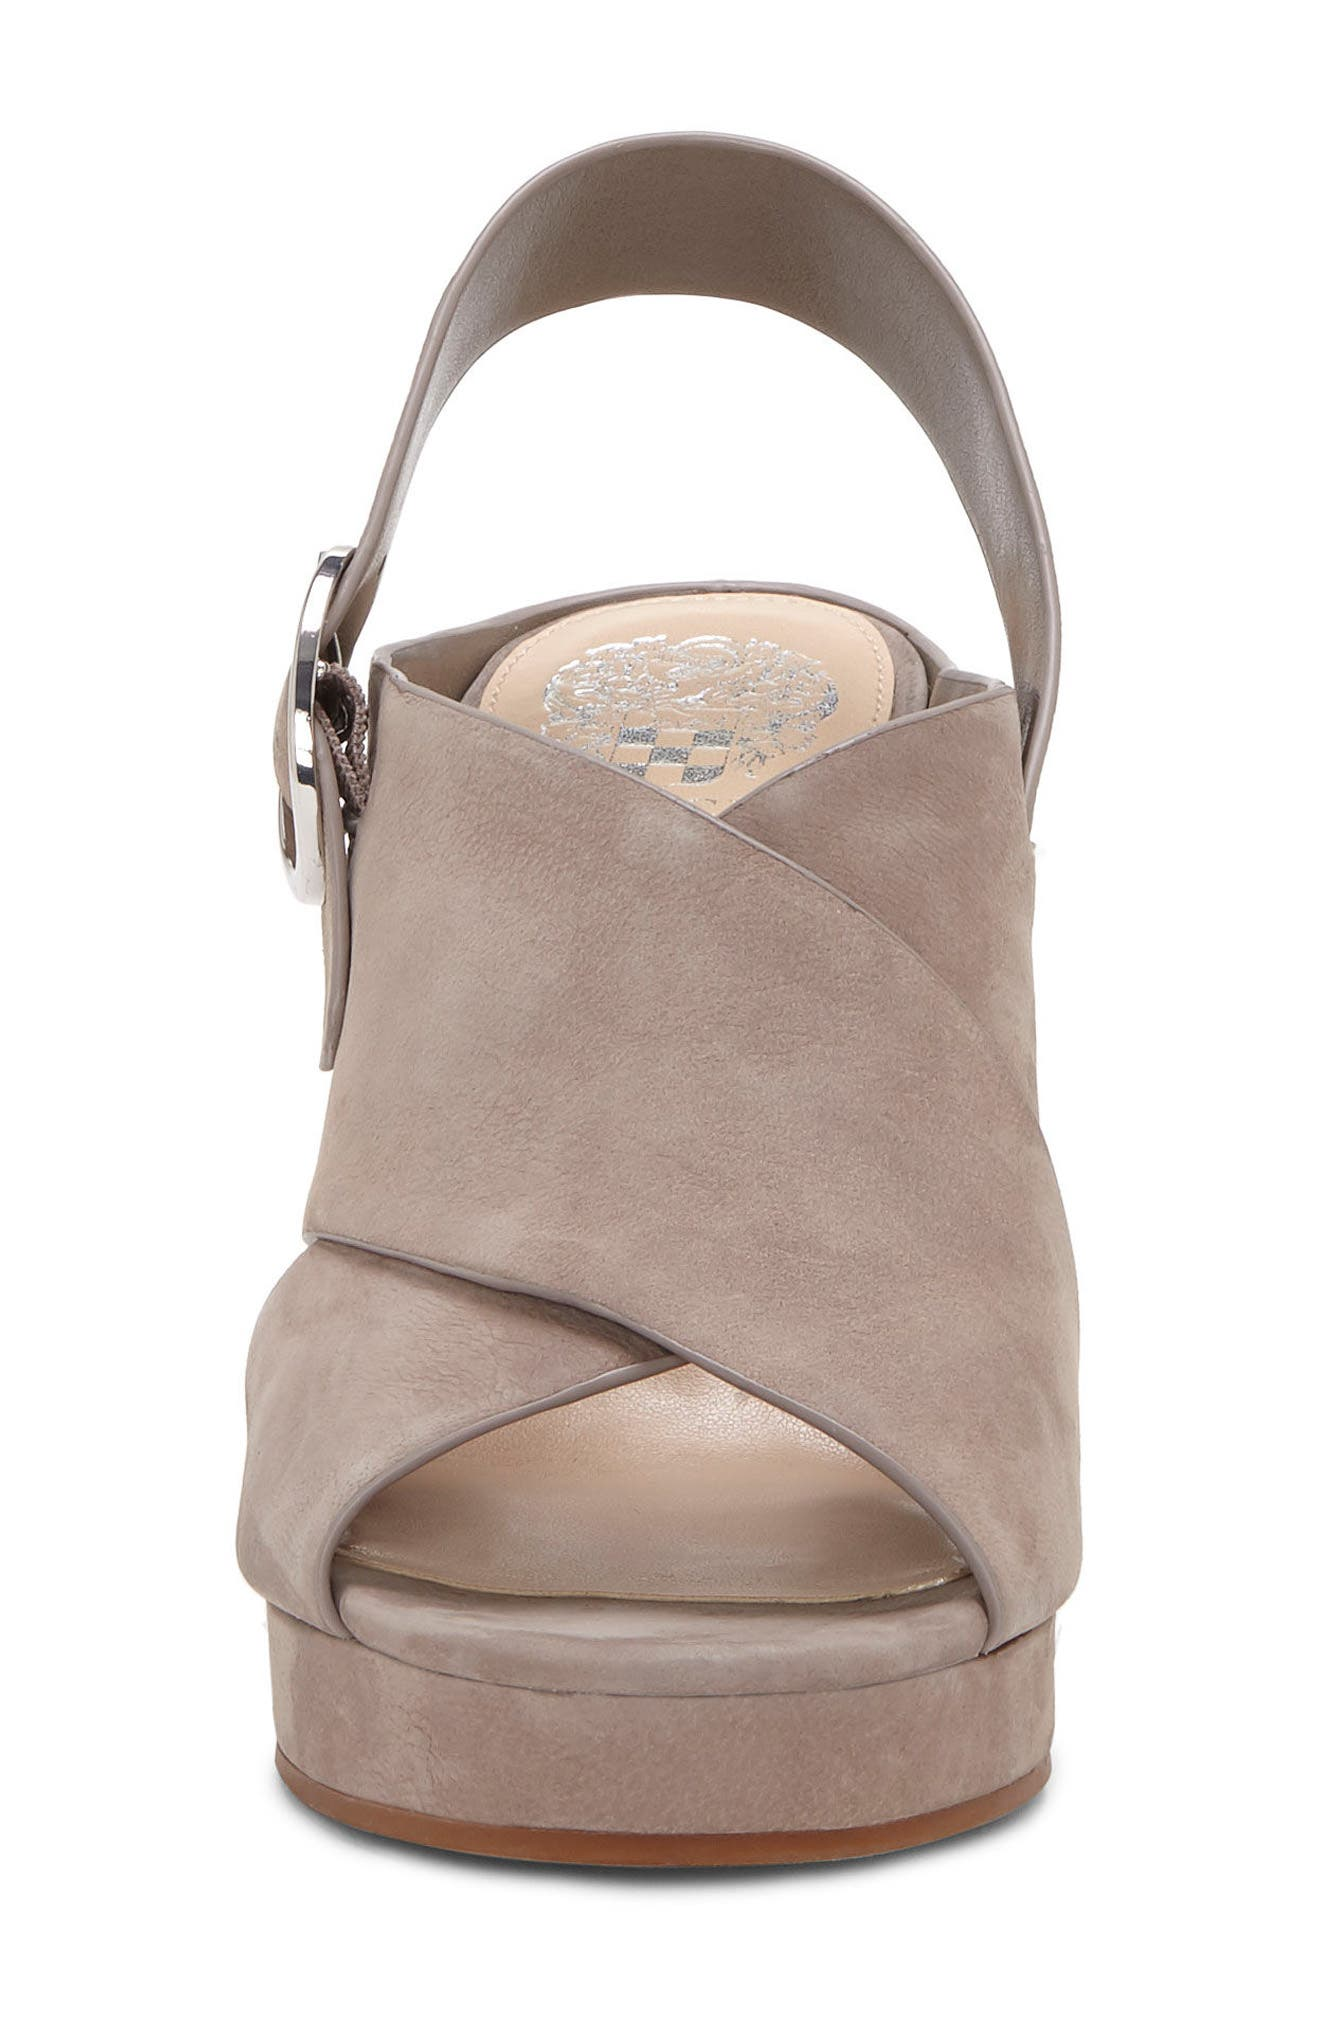 Iteena Wedge Sandal,                             Alternate thumbnail 5, color,                             Hippo Grey Leather